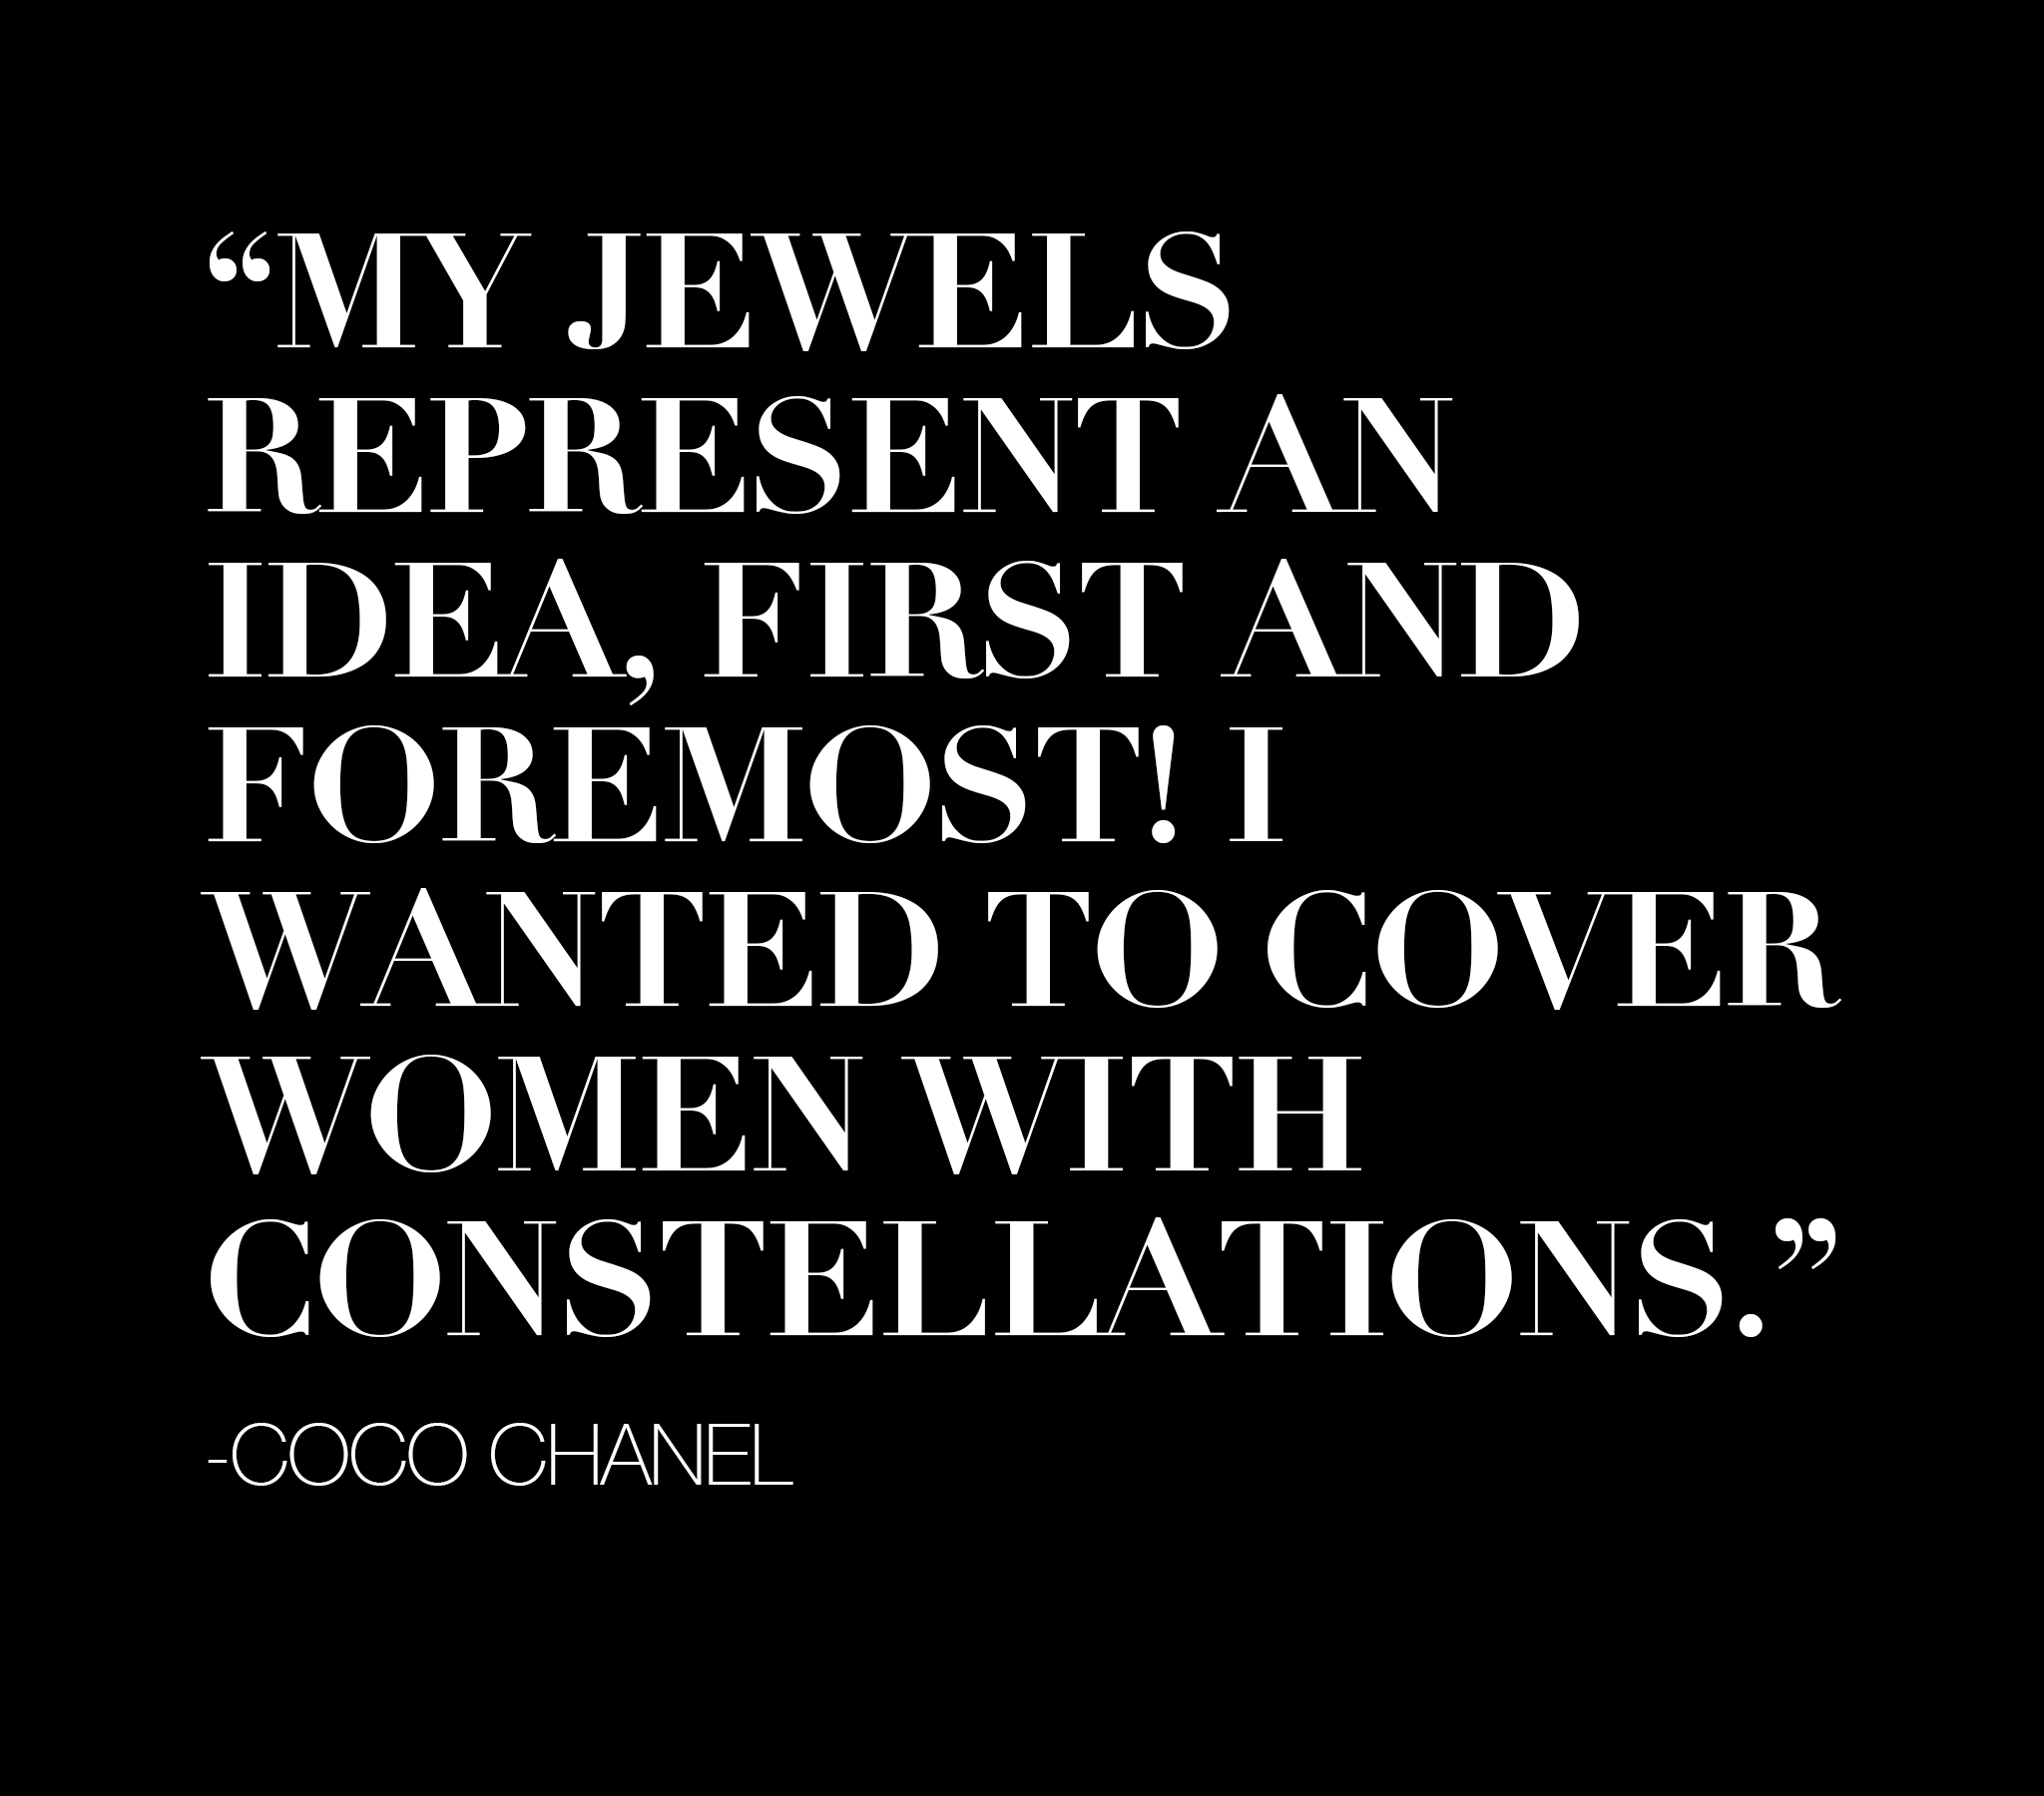 RECESS Los Angeles Vintage Dress Code COCO CHANEL Jewelry Quote Constellations